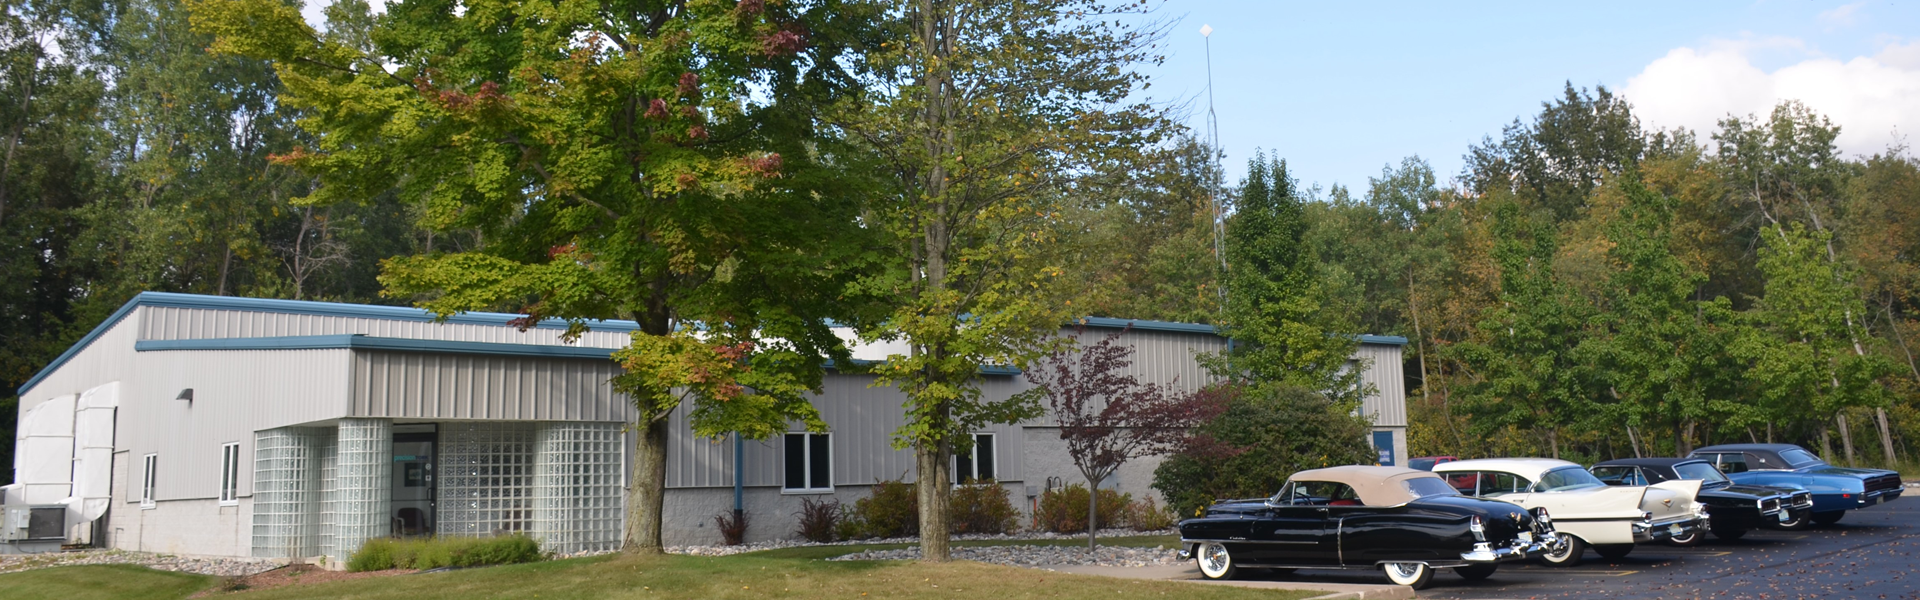 Front view of Precision Tork headquarters